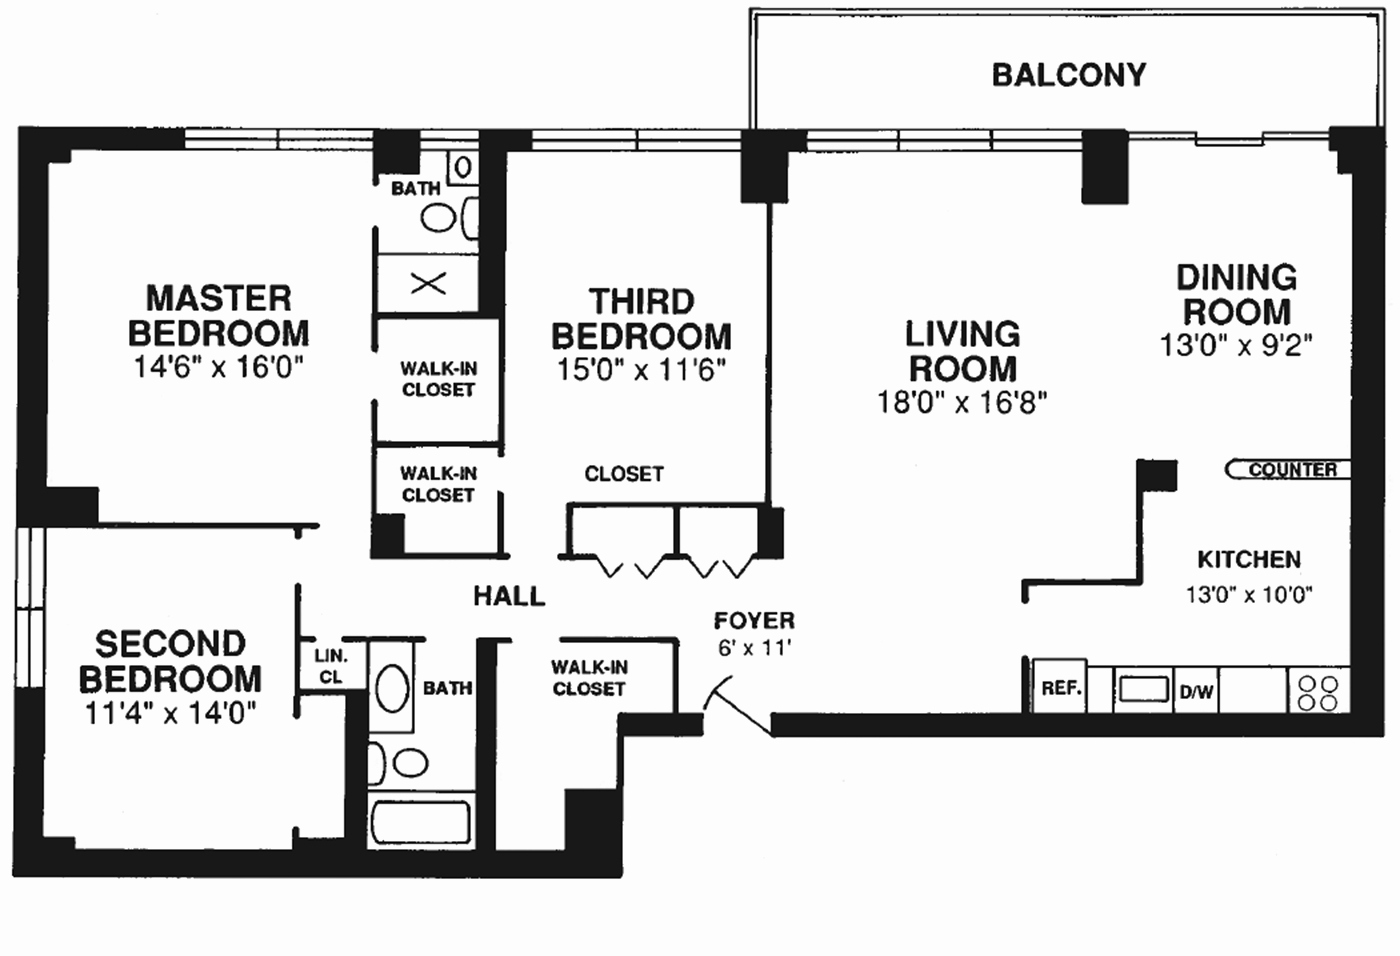 Free Floor Plan Template Beautiful 20 Unique Free Floor Plan Templates House Plans